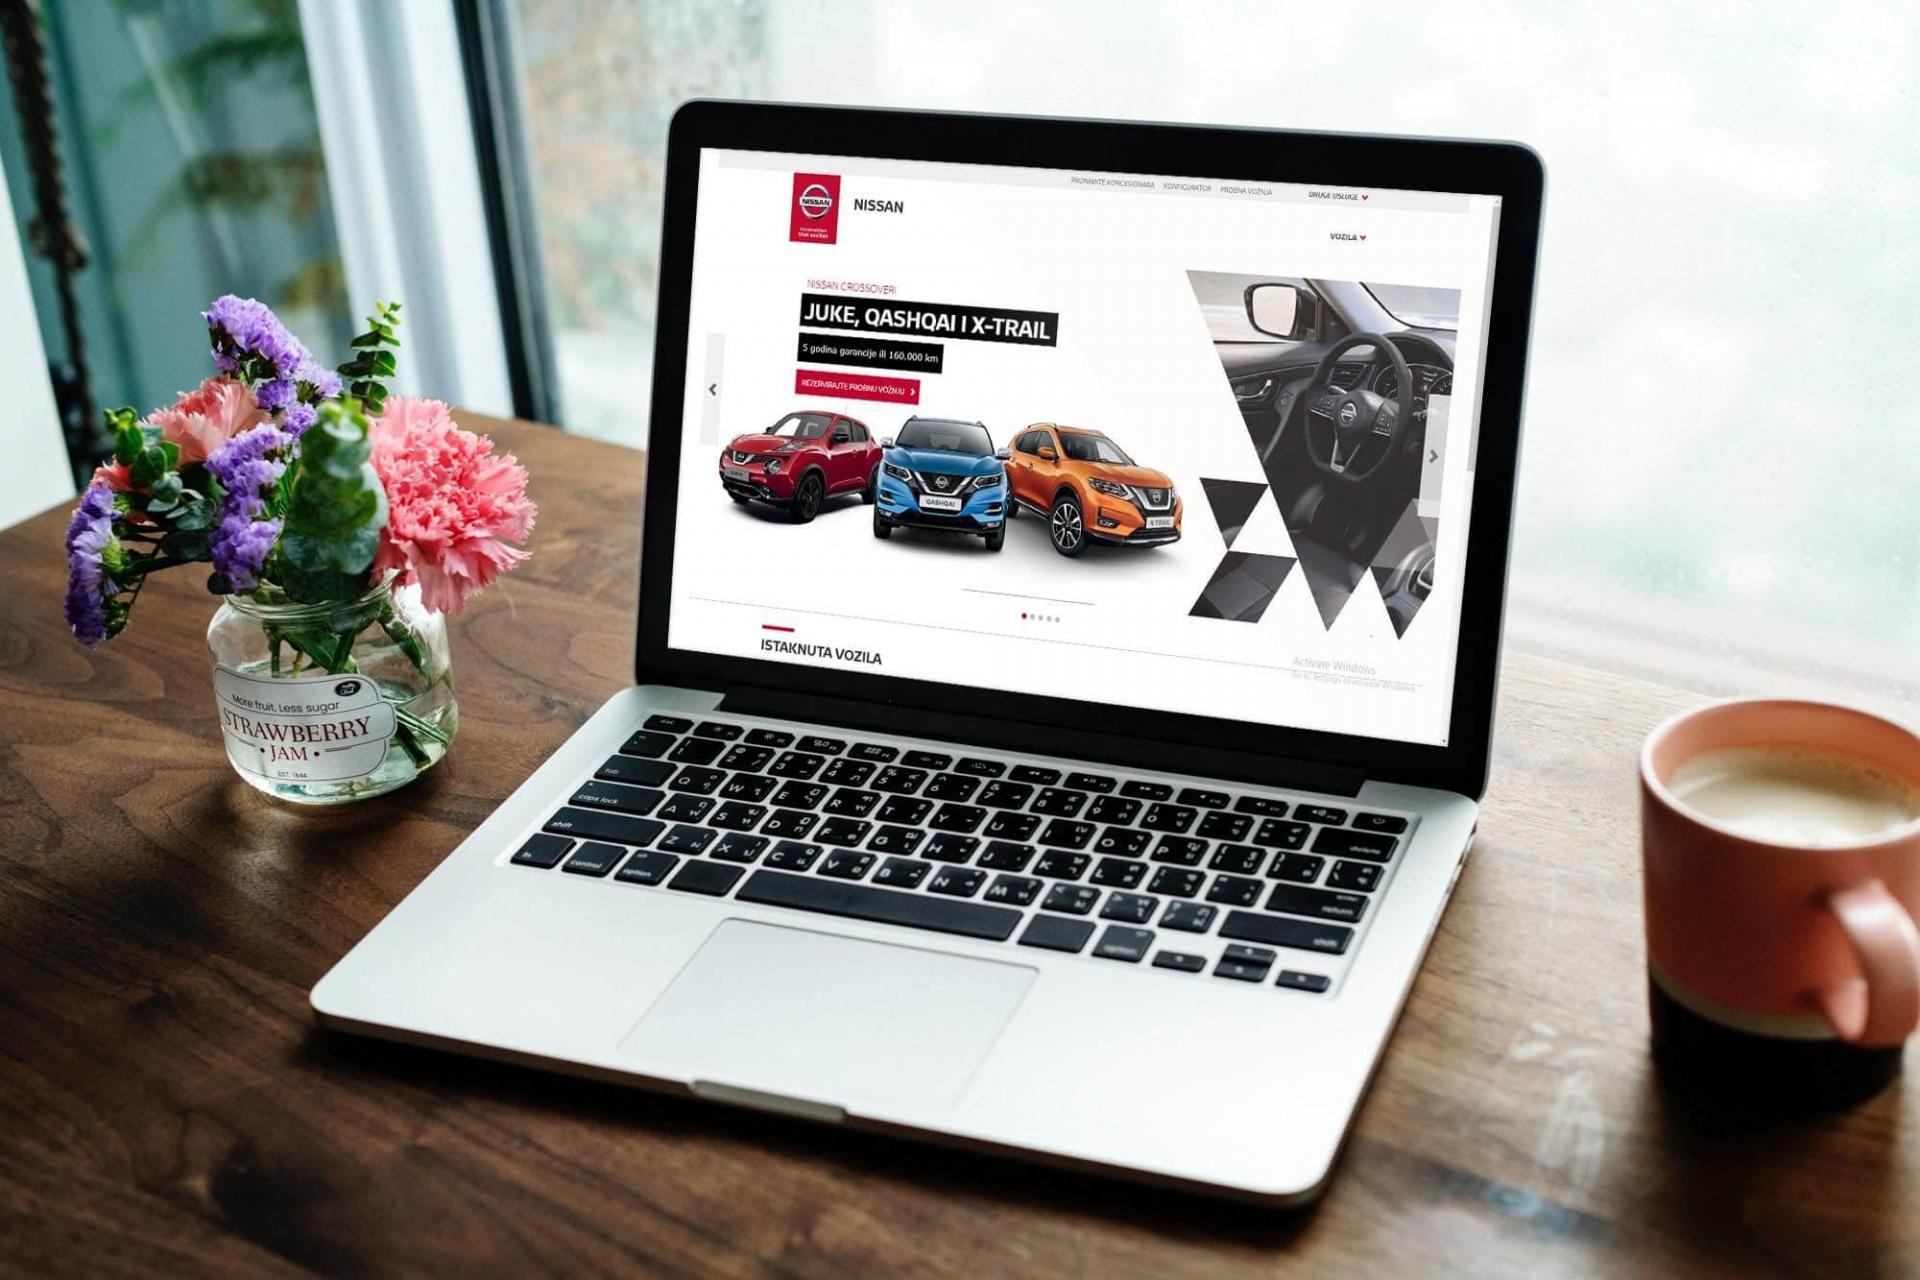 Nissan web application